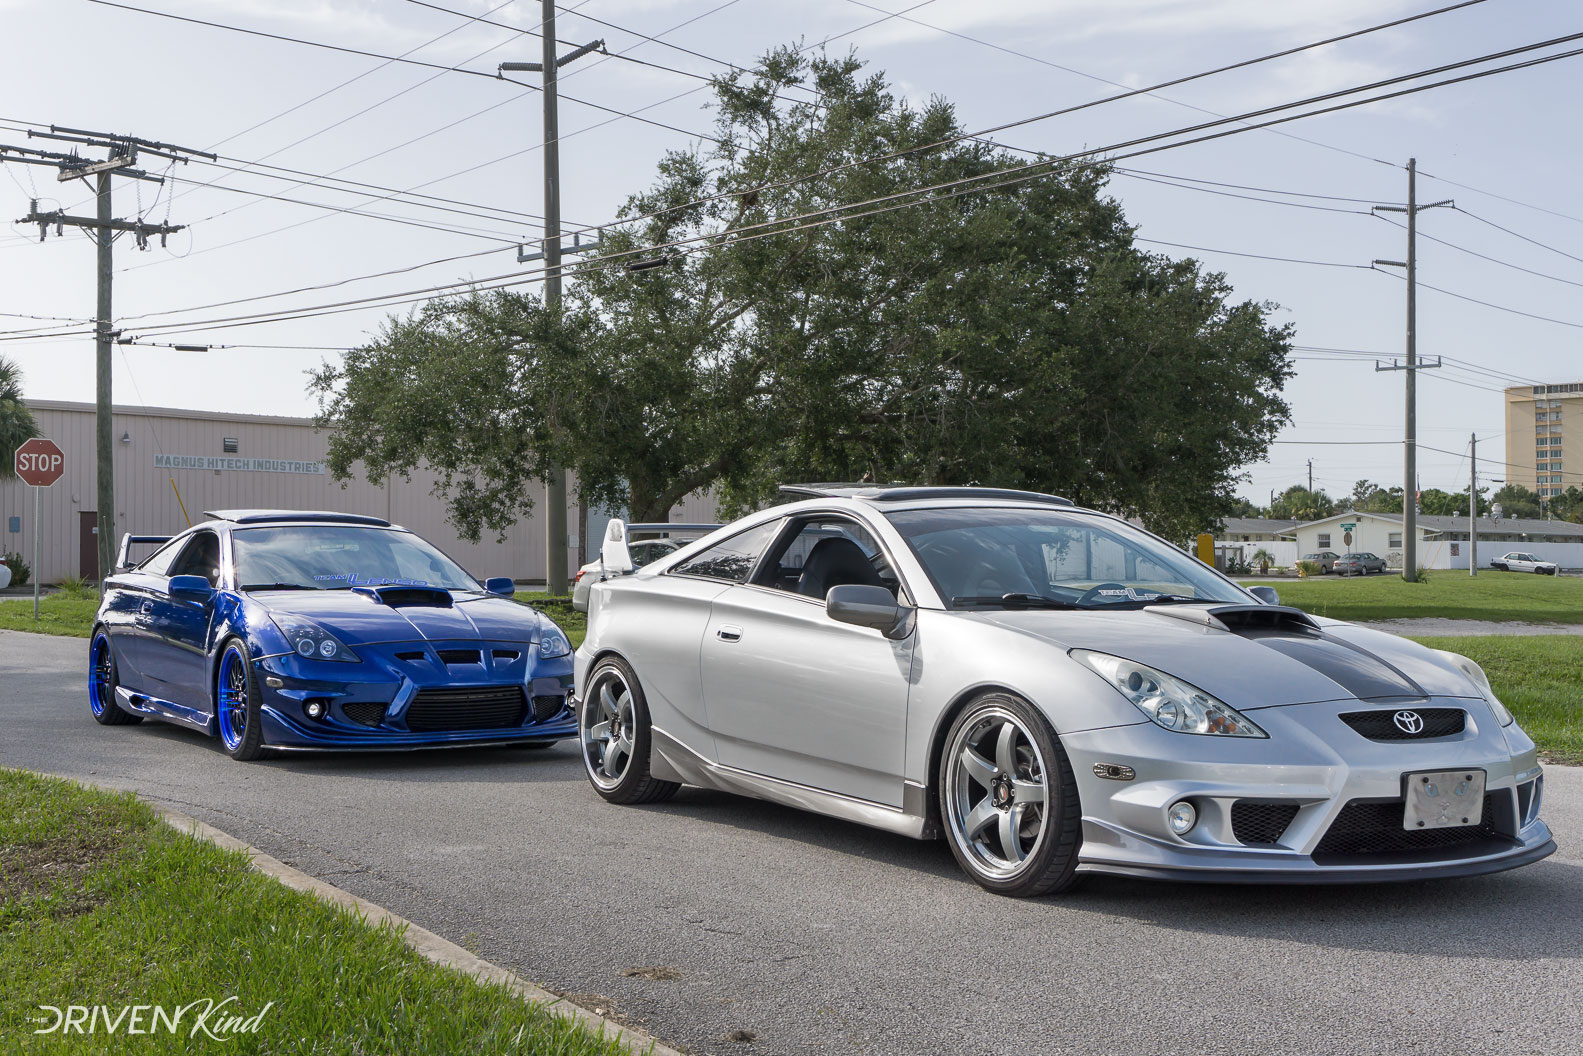 Toyota Celica Daily Driven Inc. Presents Florida's Finest Melbourne FL Auditorium coverage by The Driven Kind